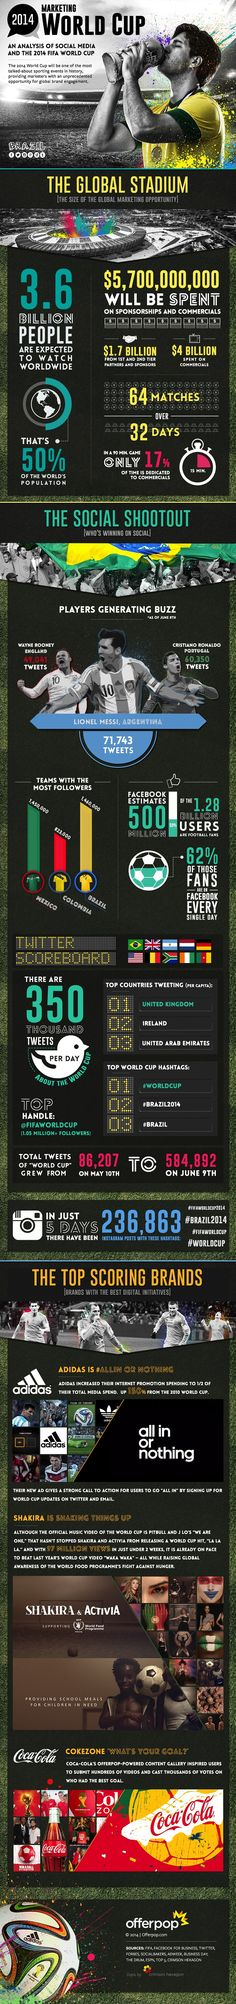 World Cup Mania on Social Media #infographic | via #BornToBeSocial - Pinterest Marketing